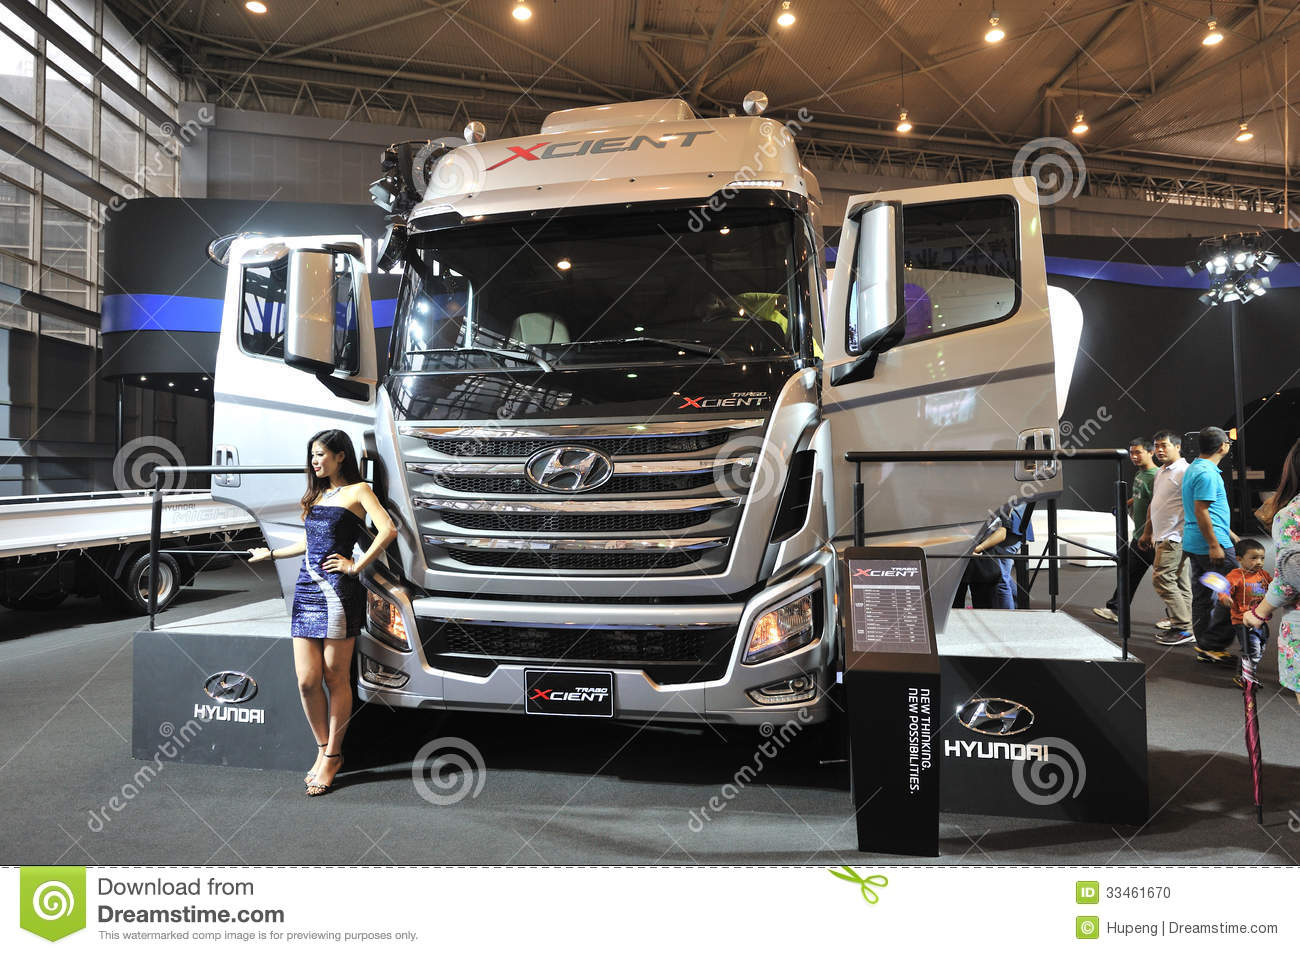 ... West - 16th Chengdu Motor Show, August 31th-September 8th, 2013